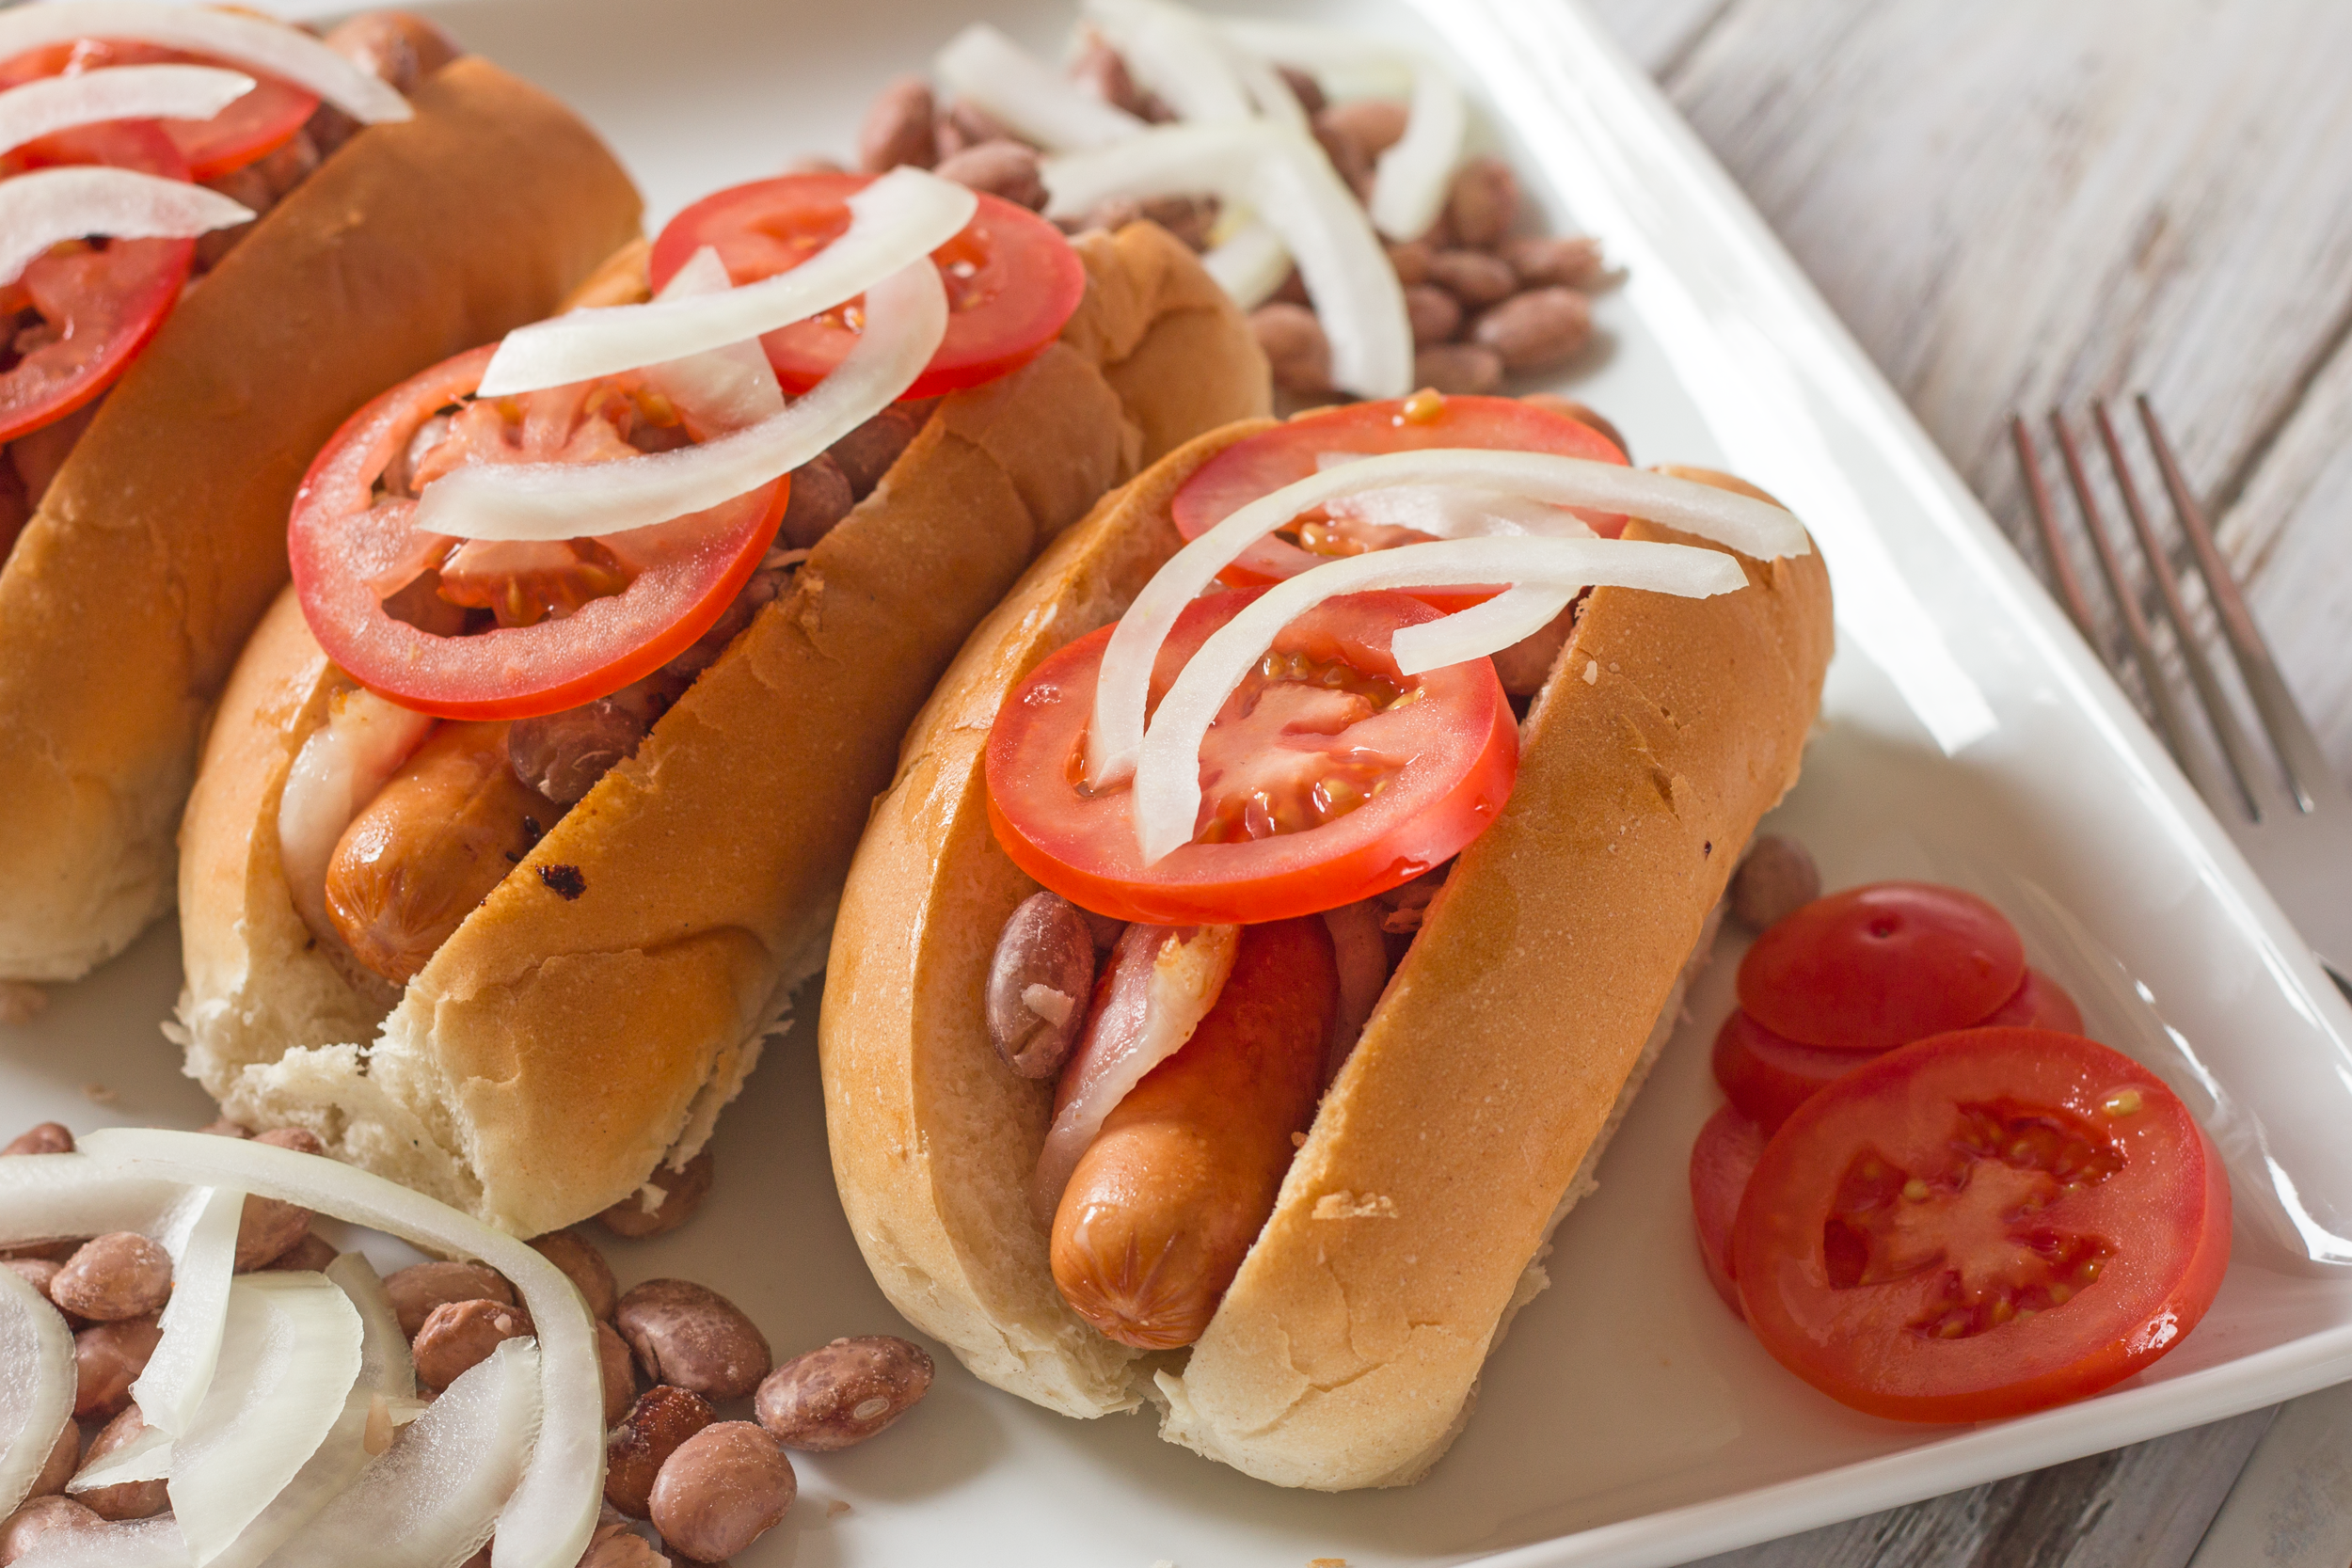 Dachshunds, Dog Wagons and Other Important Elements of Hot Dog History